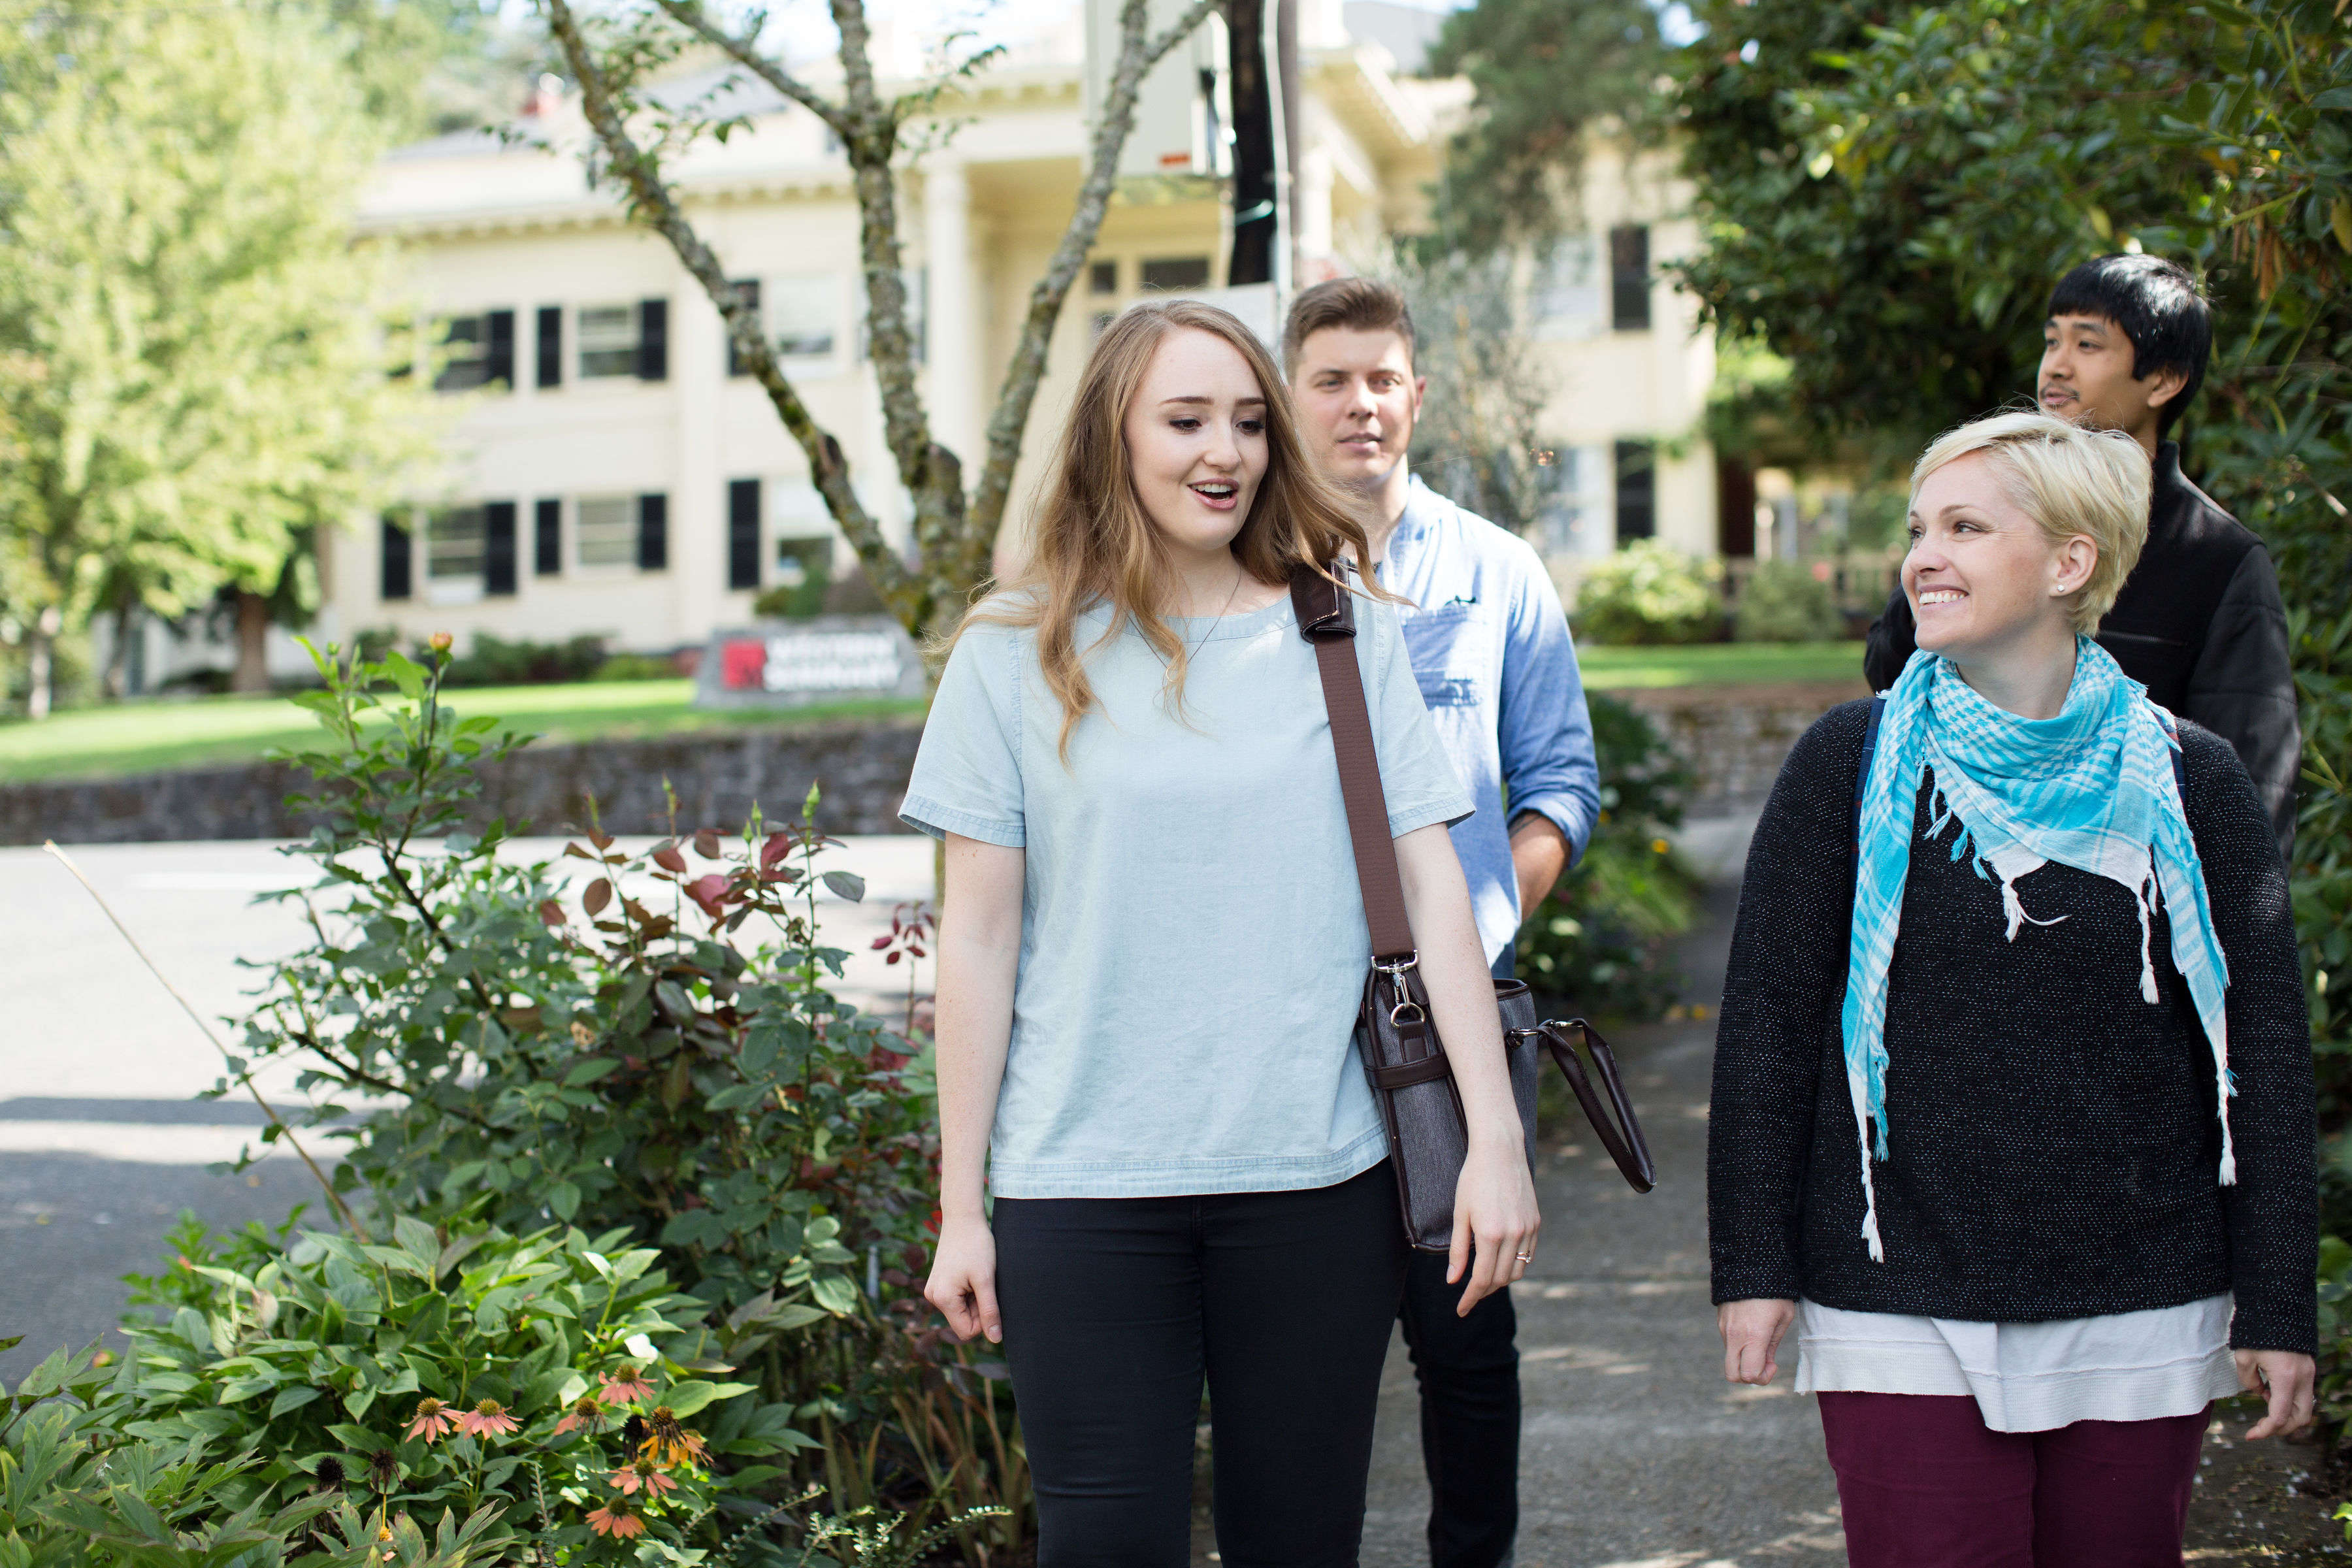 Photograph of staff and students walking and talking